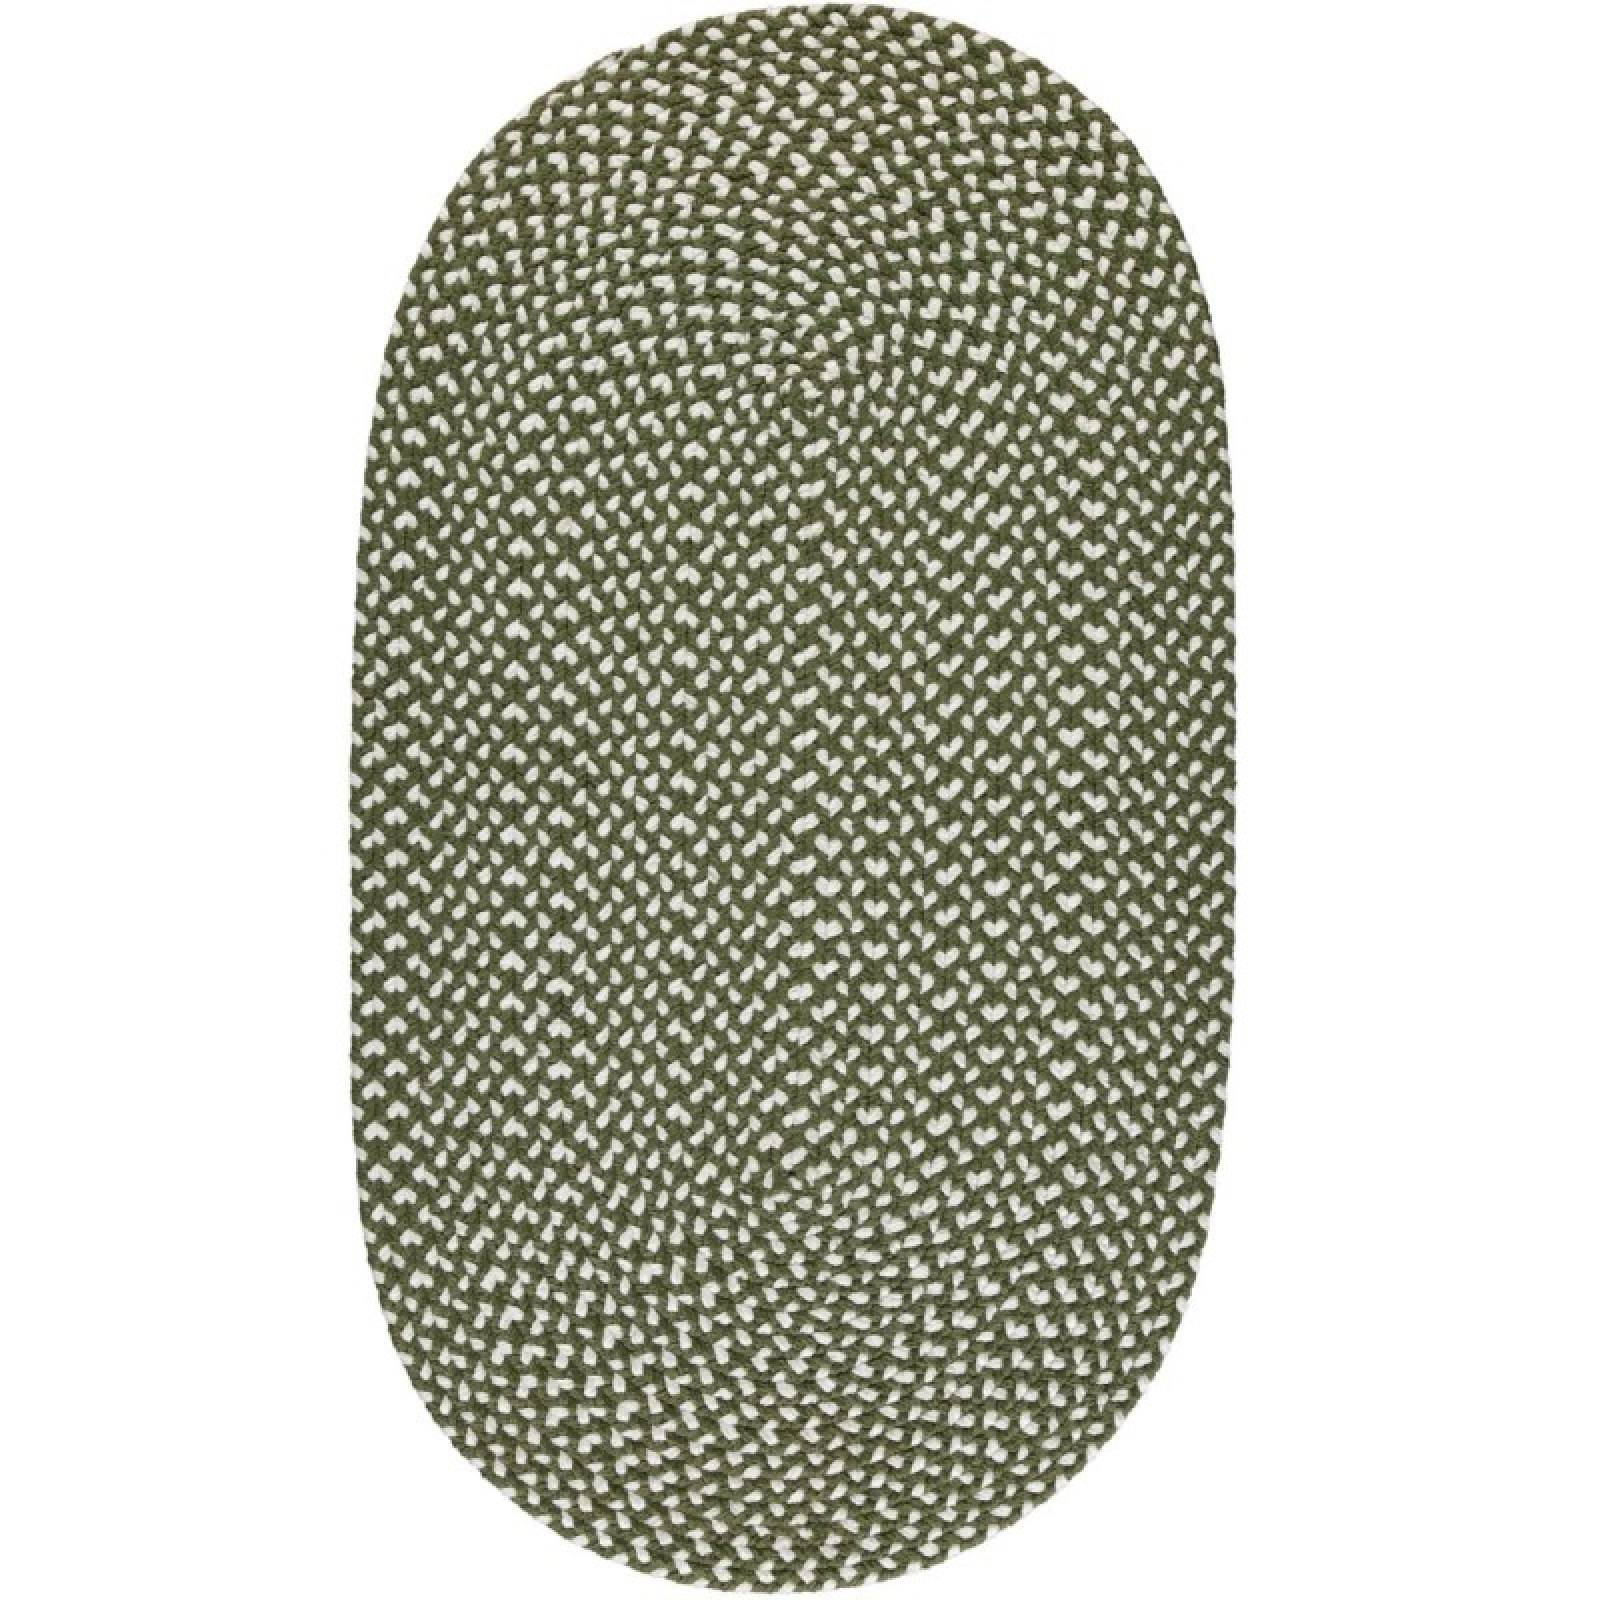 Olive Oval Braided Rug Recycled Plastic 69x122cm thumbnails